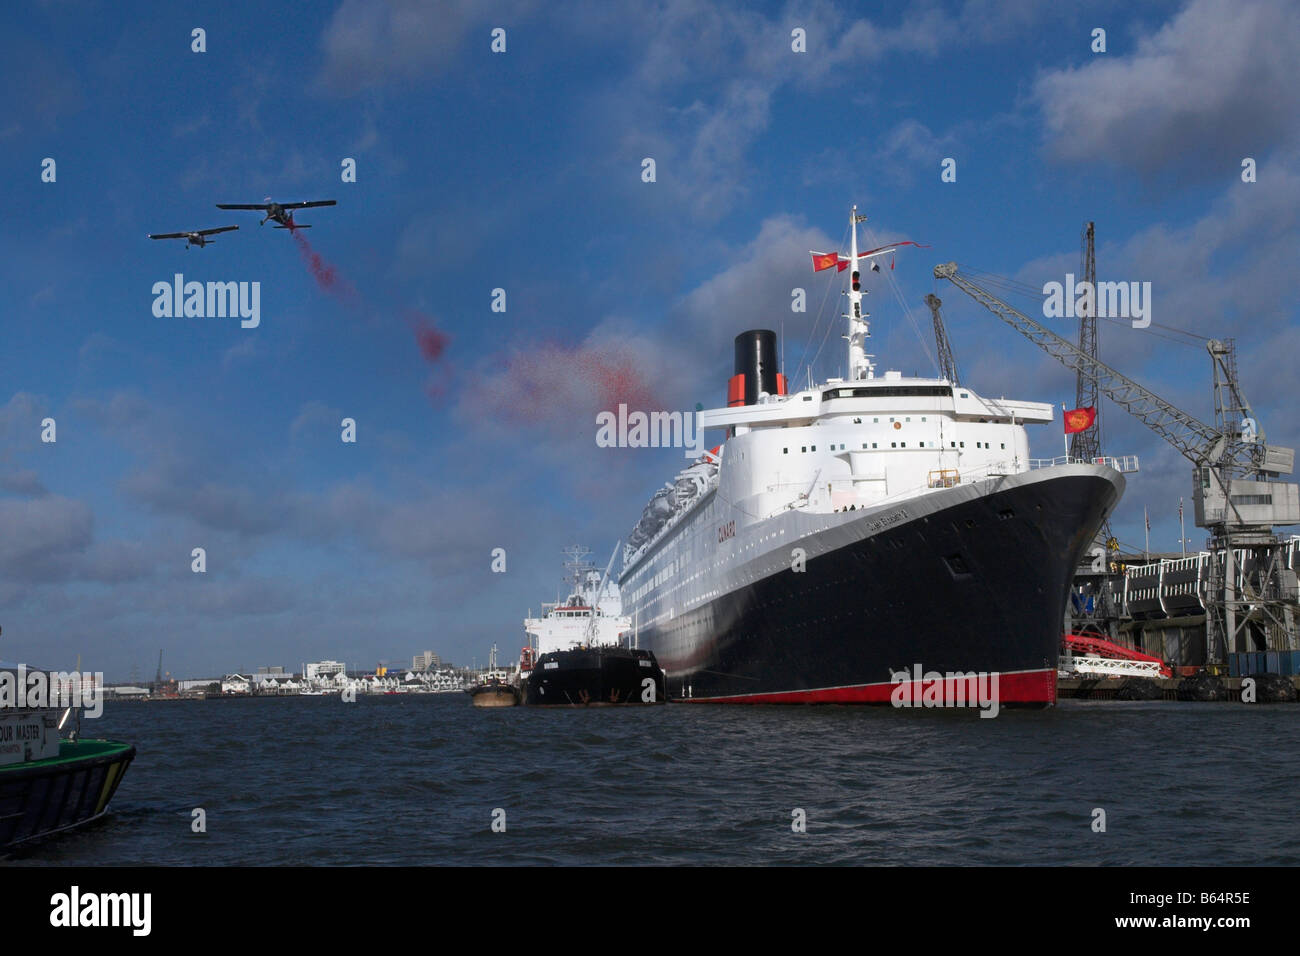 Poppies Being Dropped on the QE2 in Southampton Docks - Stock Image